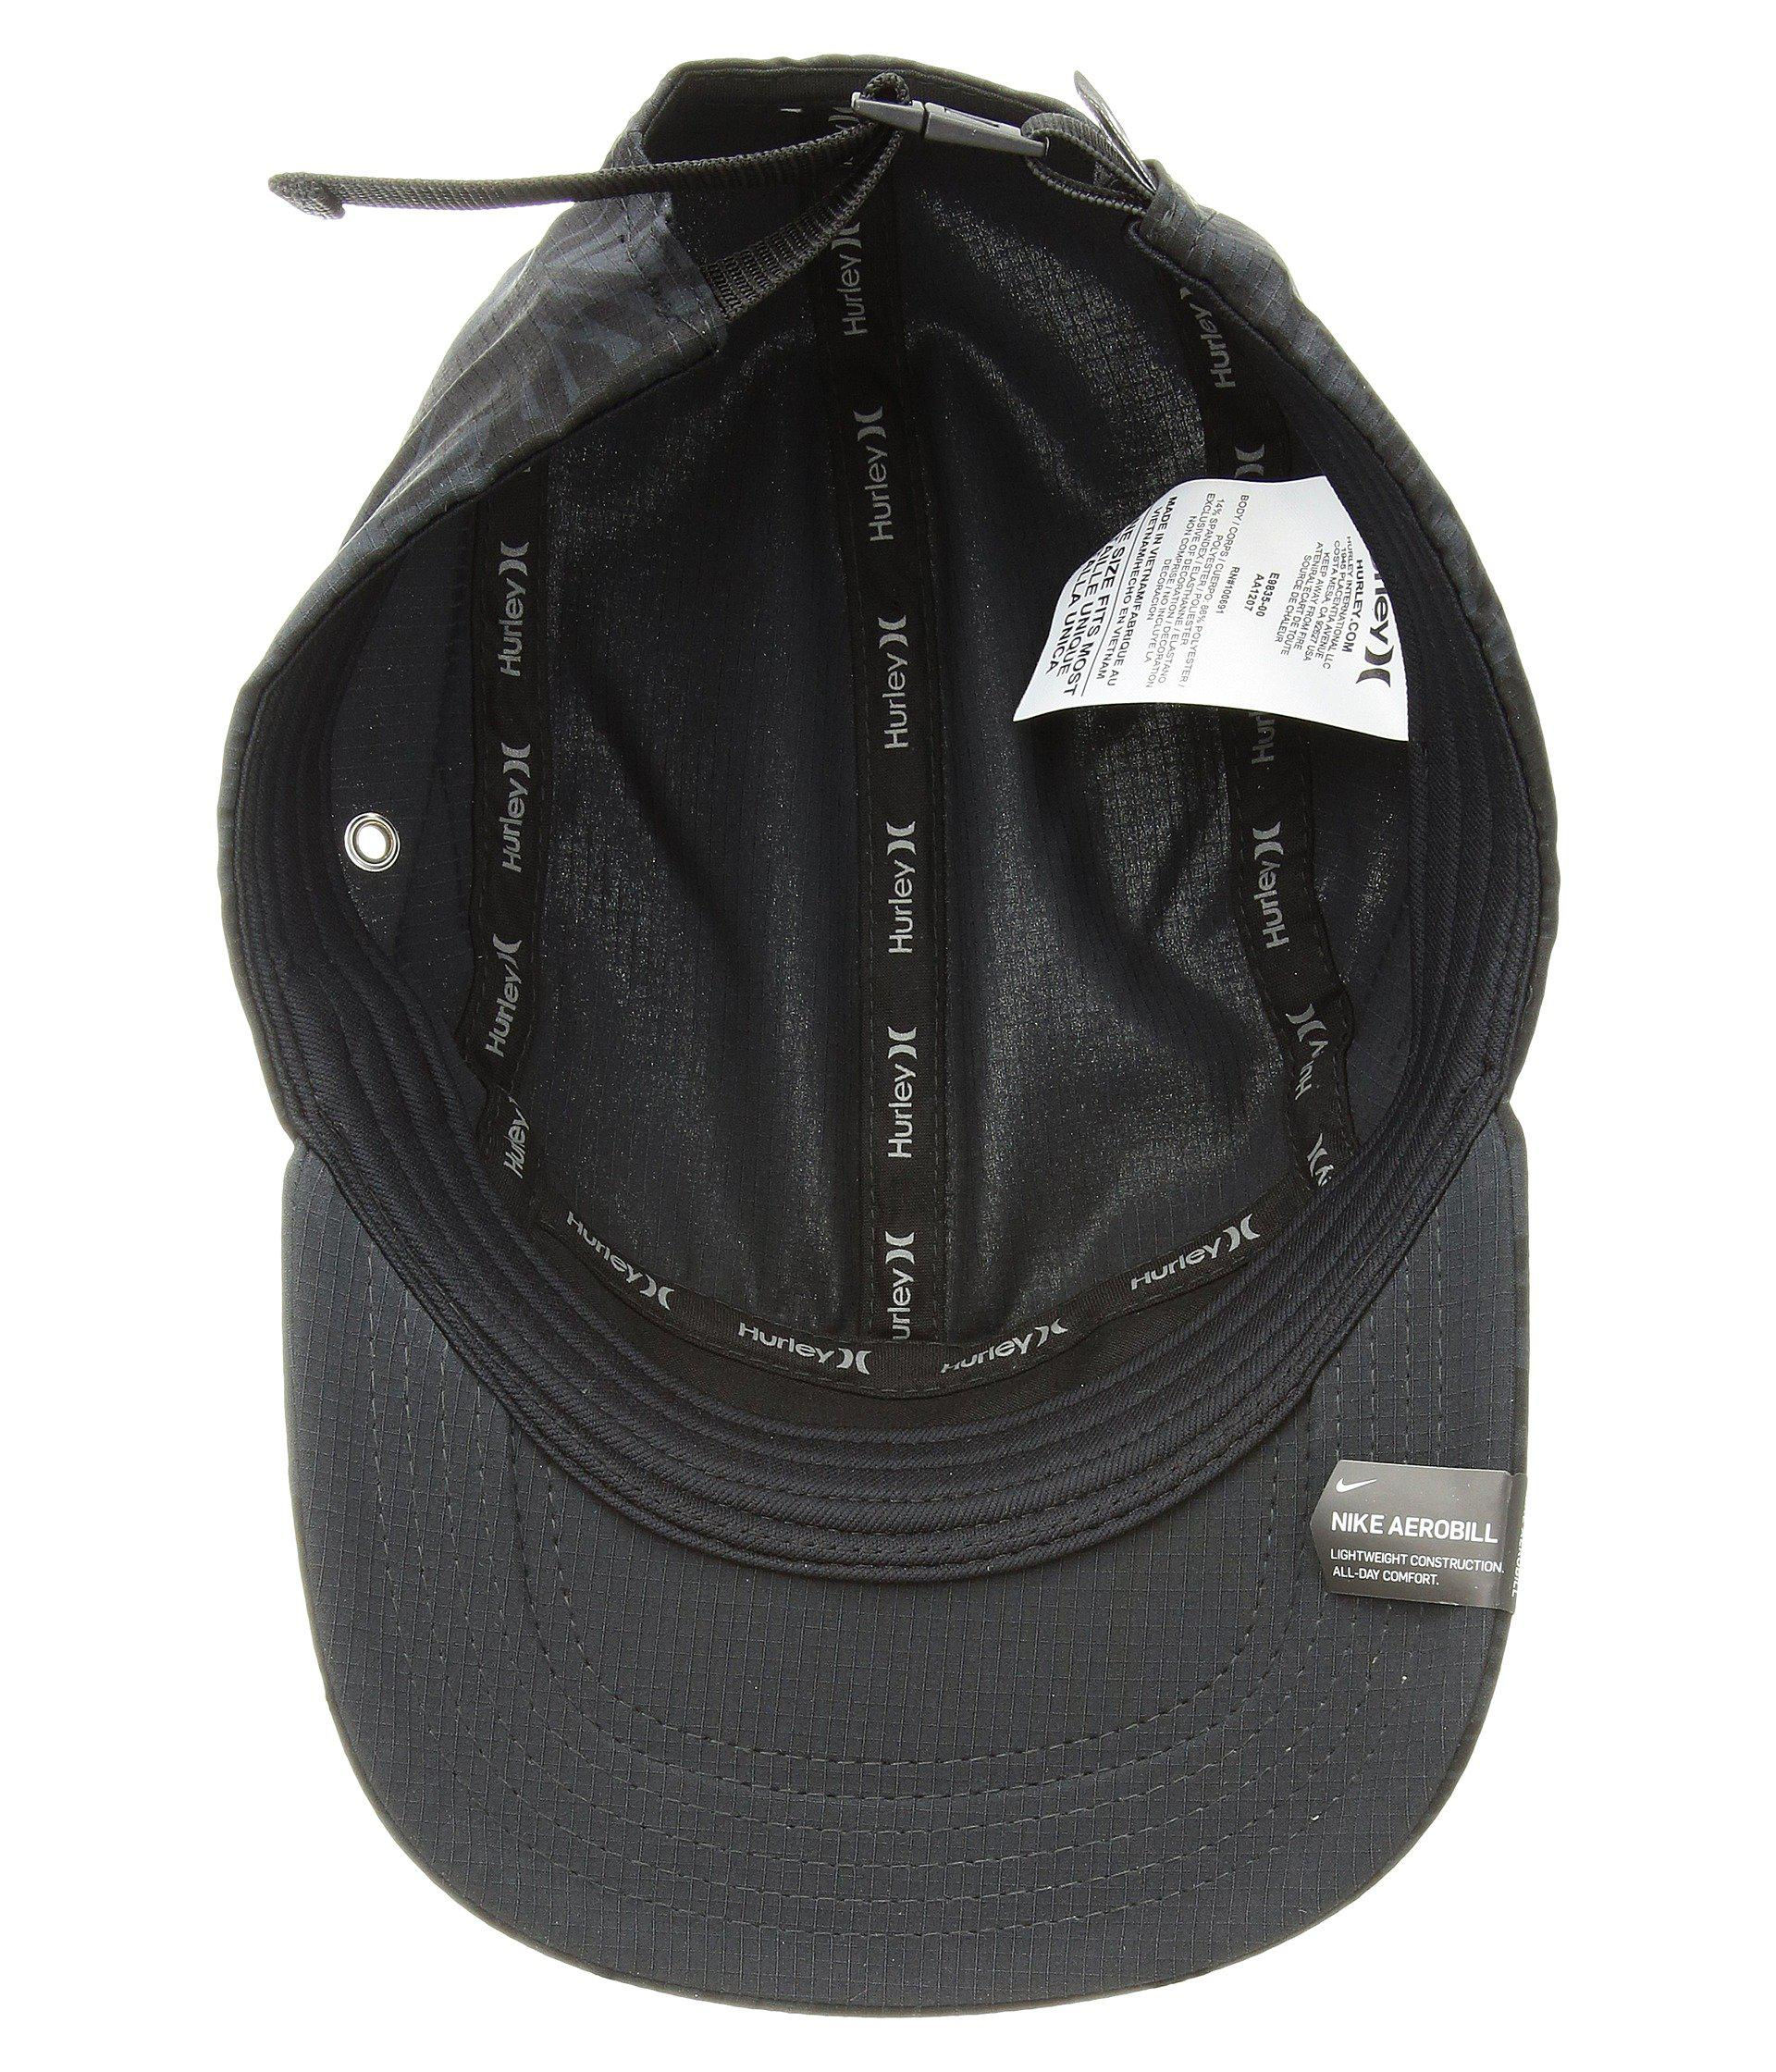 5c57508b389 Lyst - Hurley One And Only Palmer Hat (black) Caps in Black